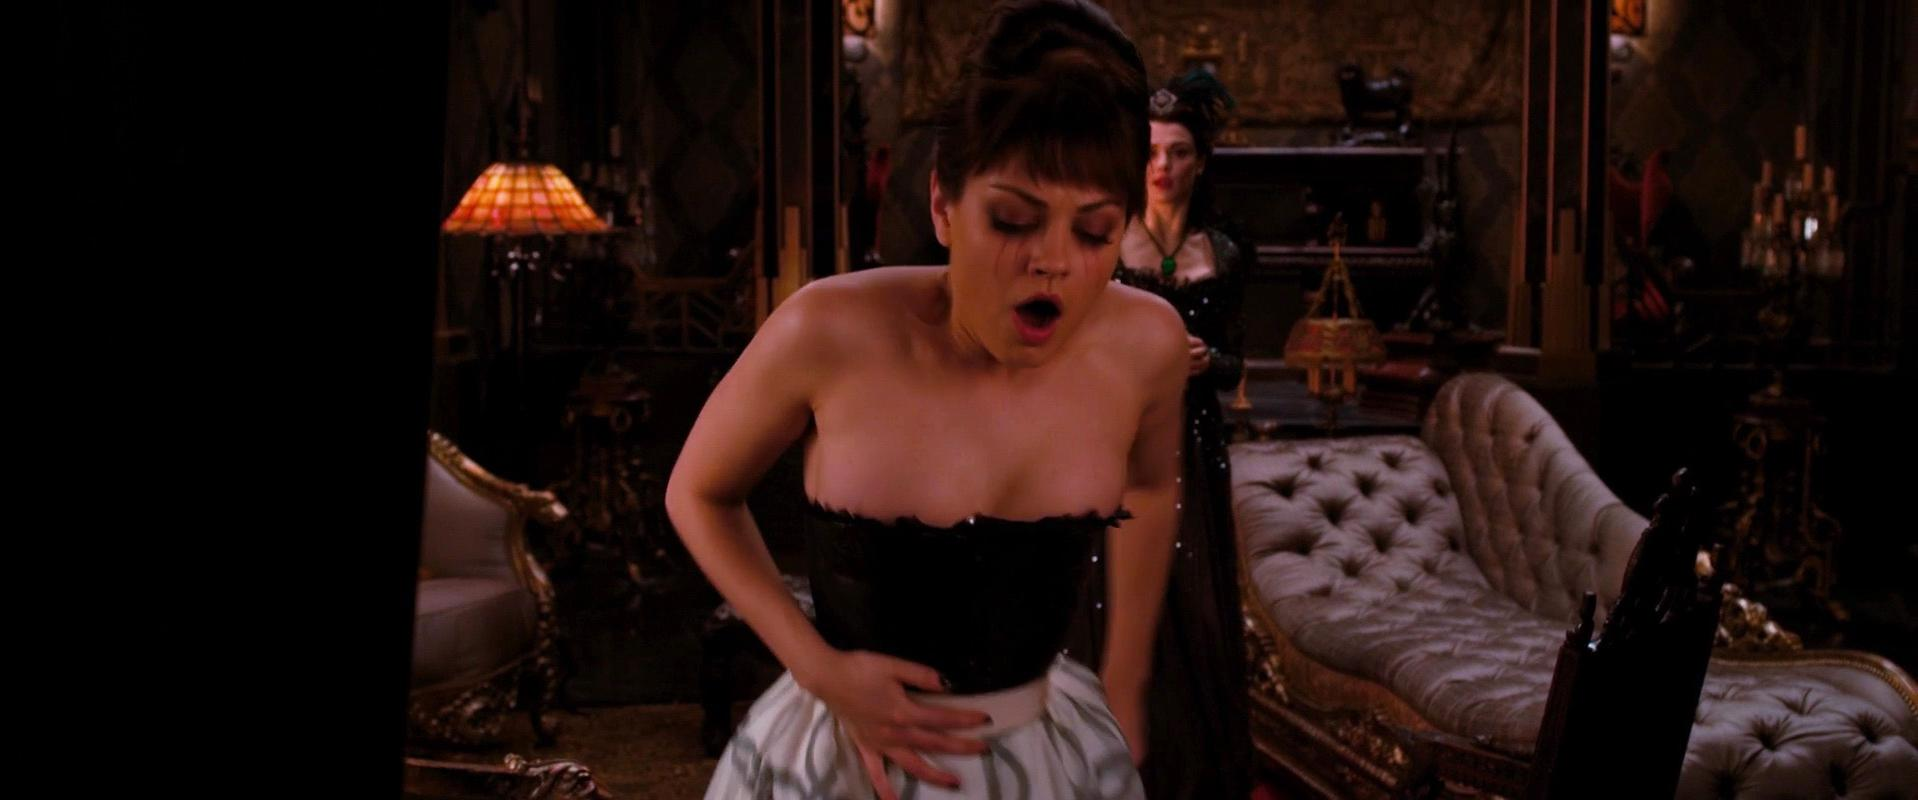 Mila Kunis sexy - Oz the Great and Powerful (2013)